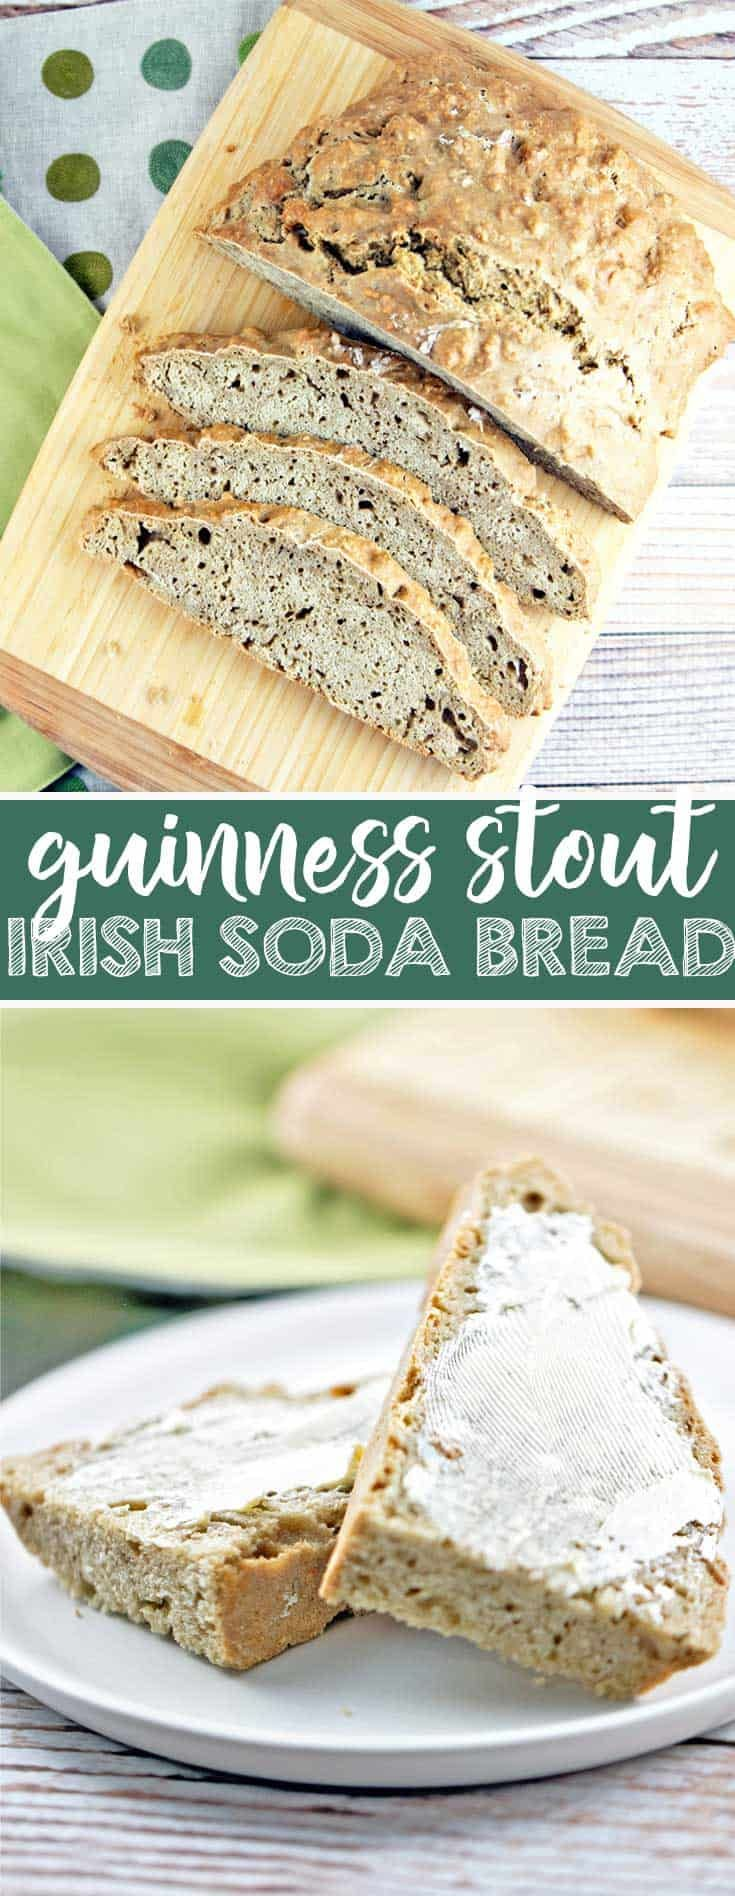 Guinness Irish Soda Bread: take your St. Patrick's Day up a notch with this stout-infused soda bread. {Bunsen Burner Bakery} #sodabread #quickbread #guinness #irishsodabread via @bnsnbrnrbakery